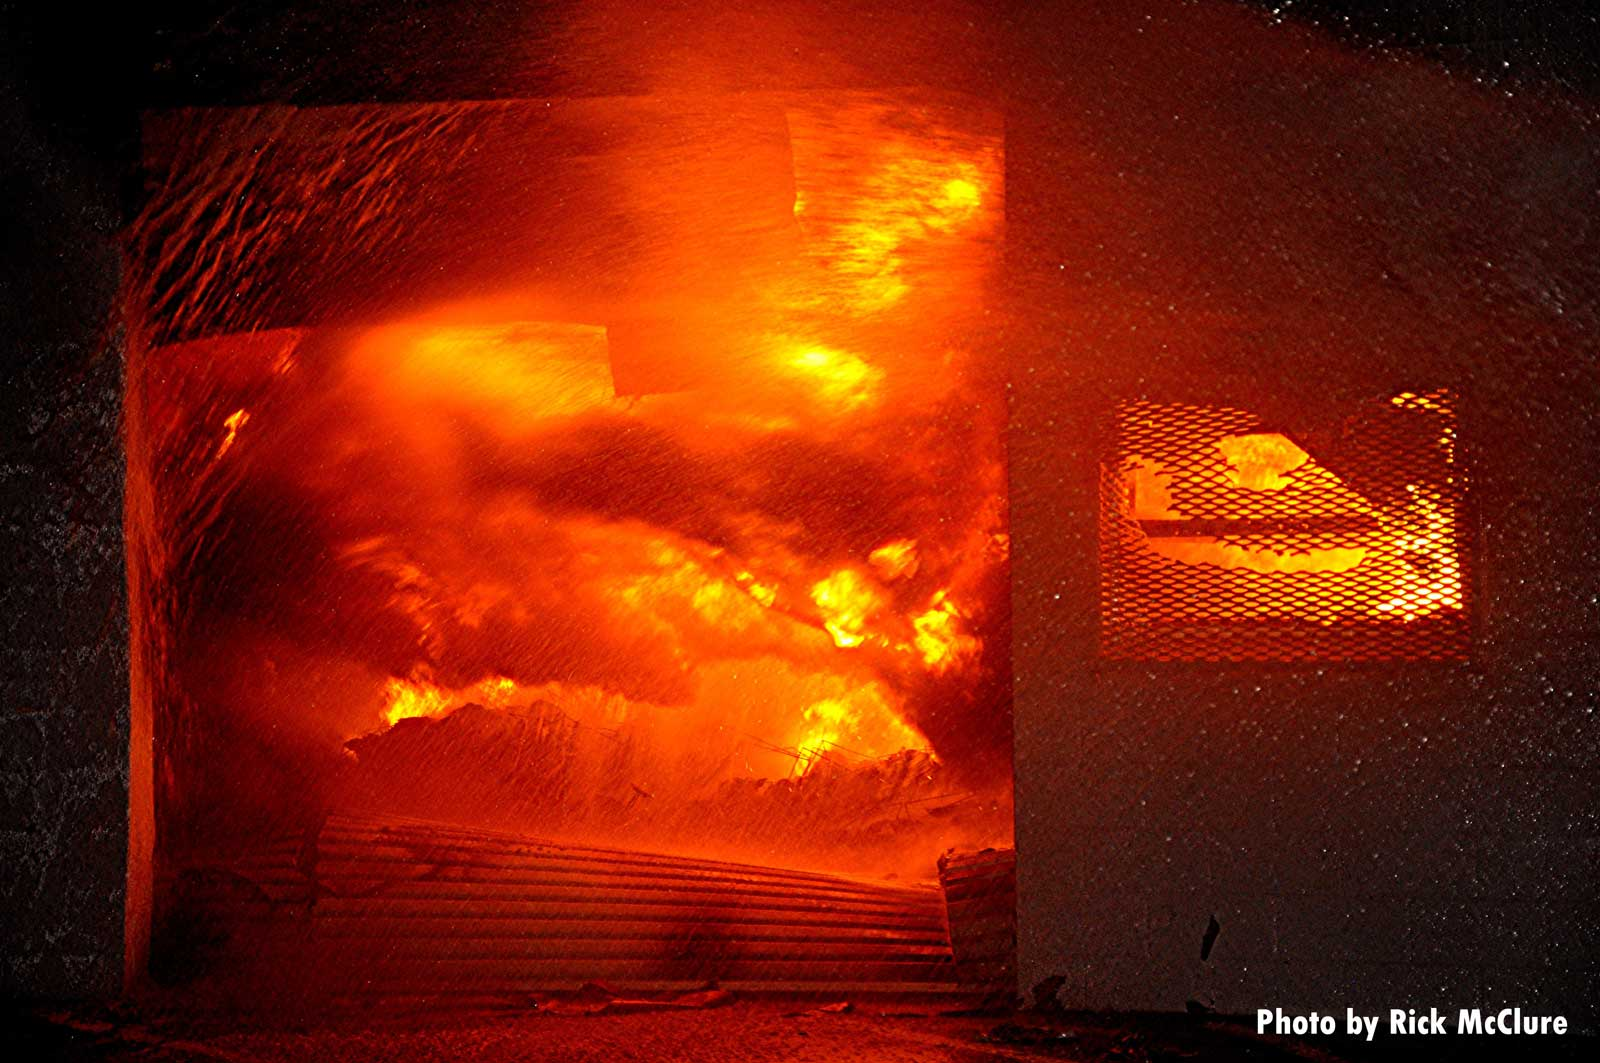 Flames consume the building